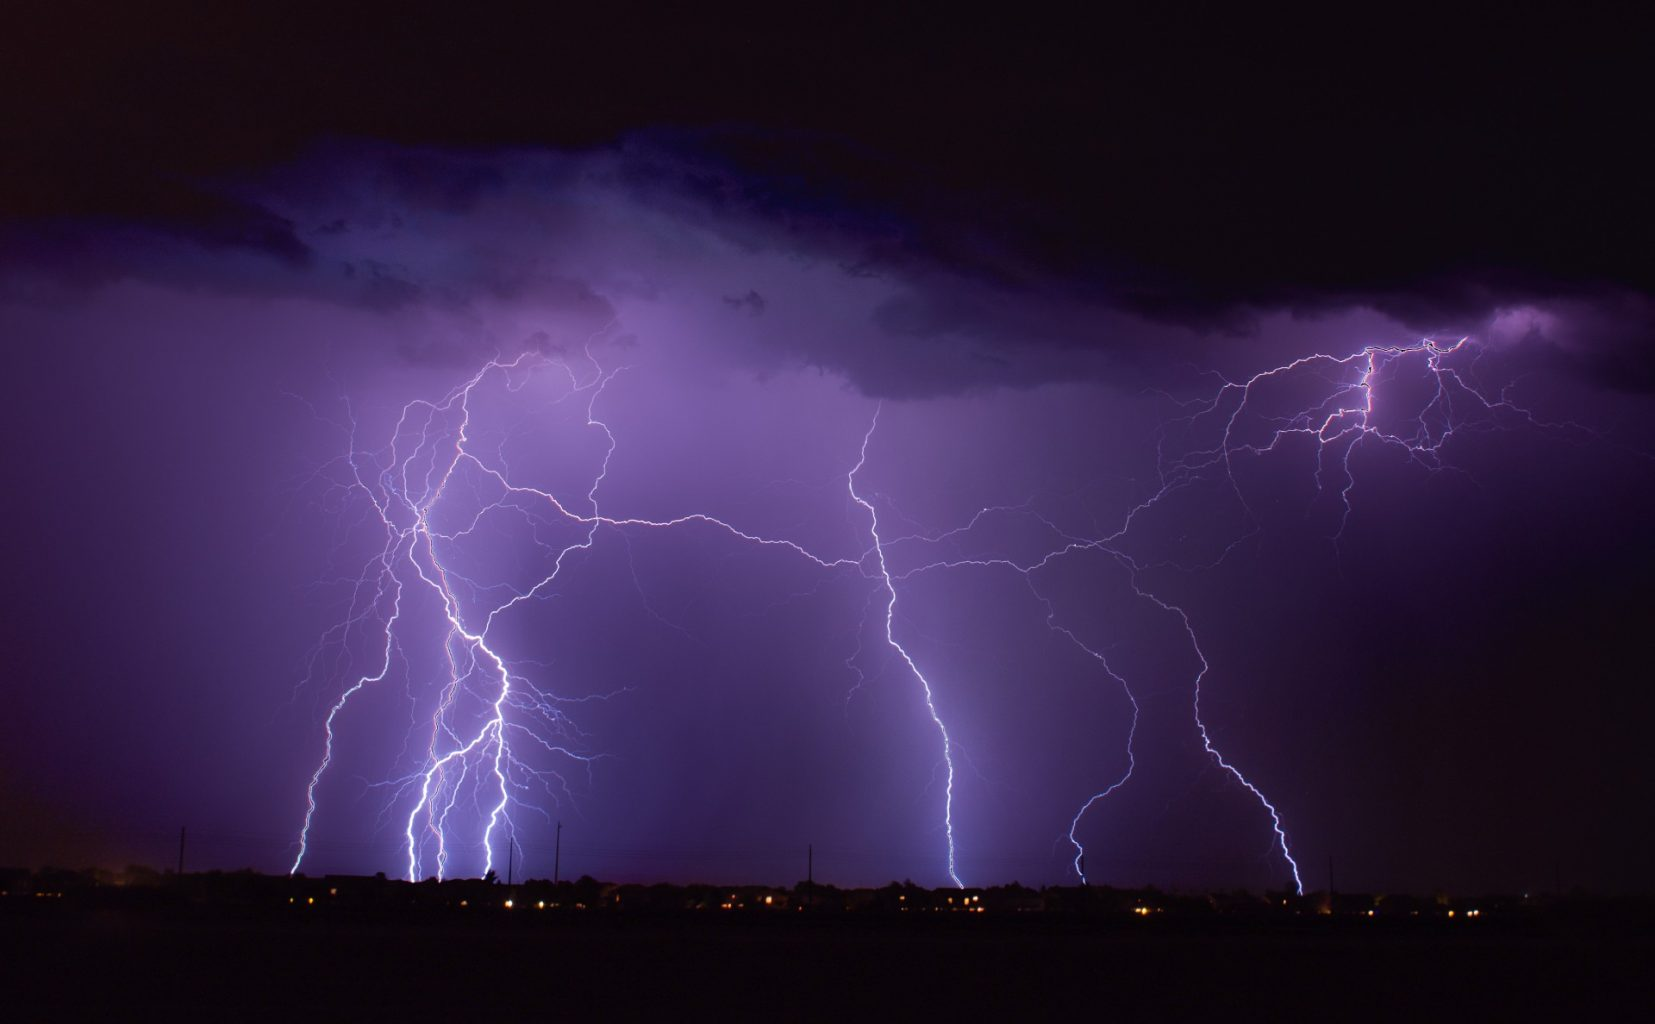 Image: Lightning rains down from a purple sky in the desert